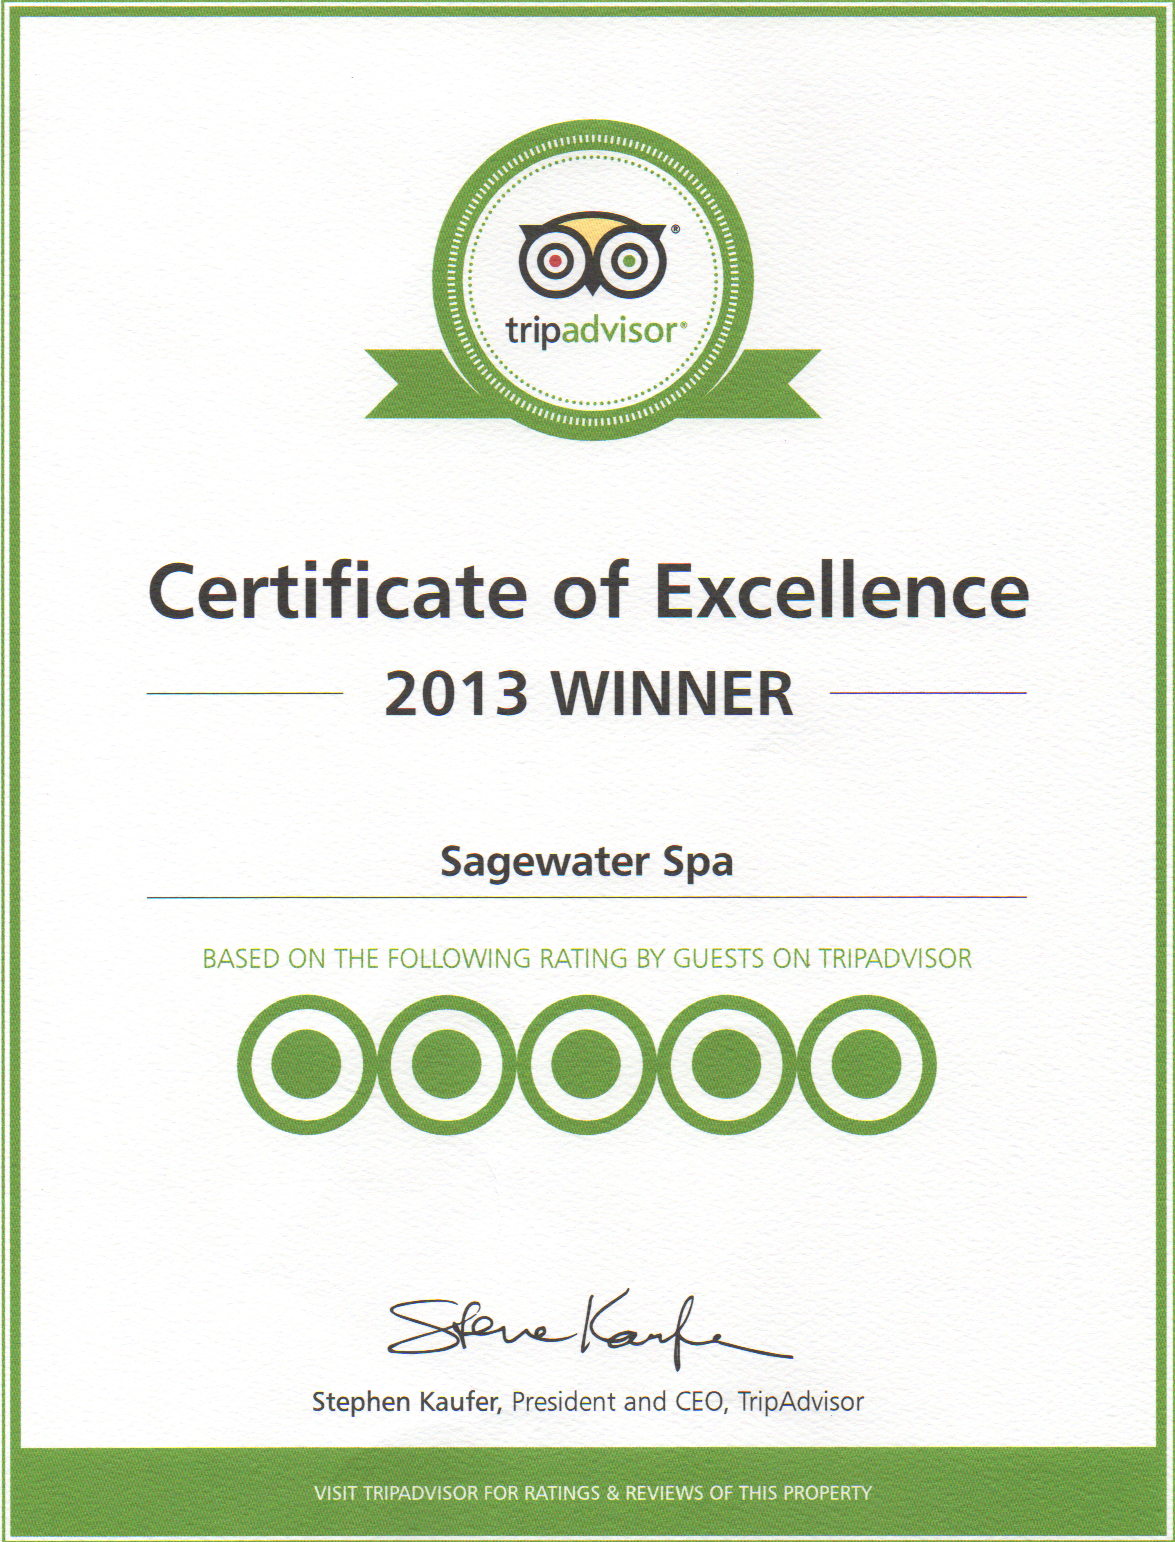 Sagewater spa a personalized luxury experience tripadvisor tripadvisor awards sagewater spa 2013 certificate of excellence xflitez Images